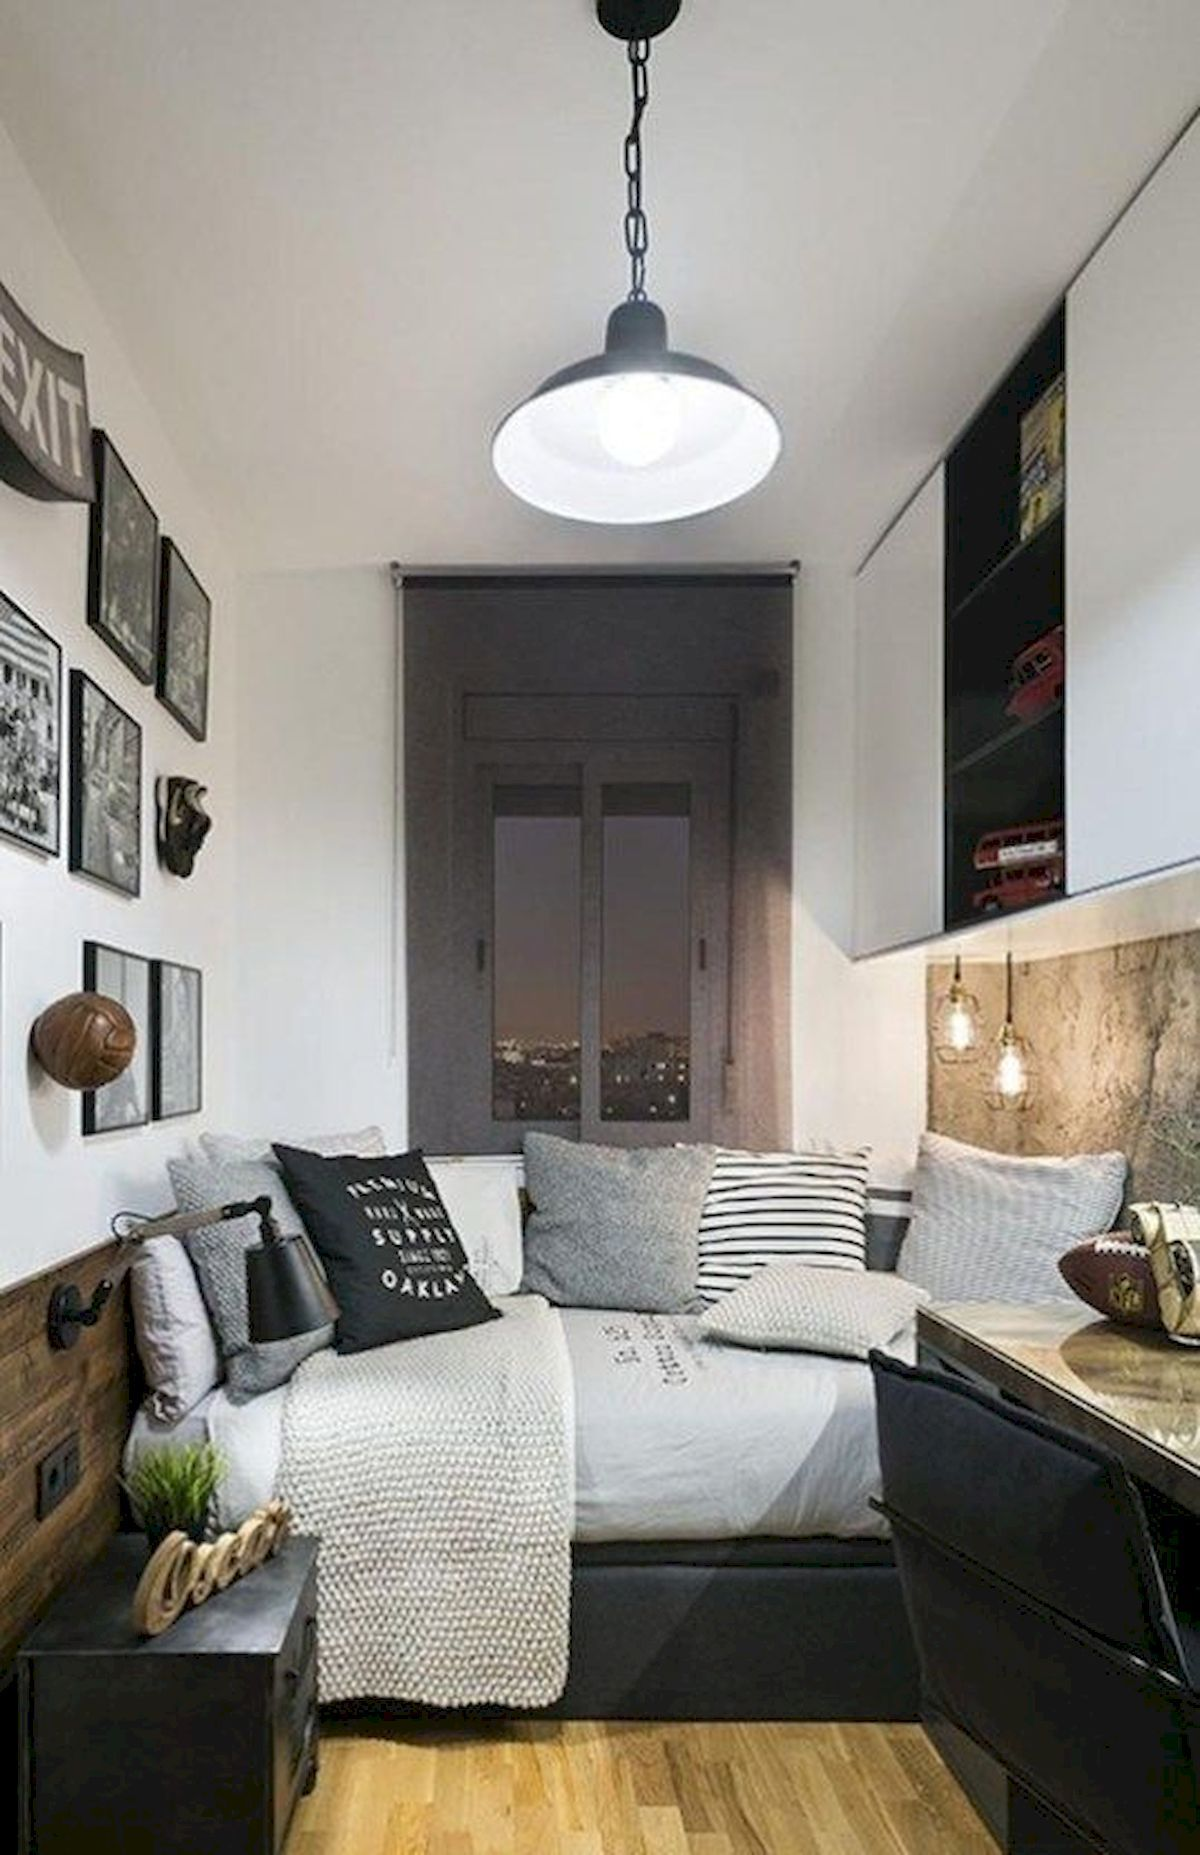 30 Awesome Small Bedroom Decorating Ideas On A Budget Small